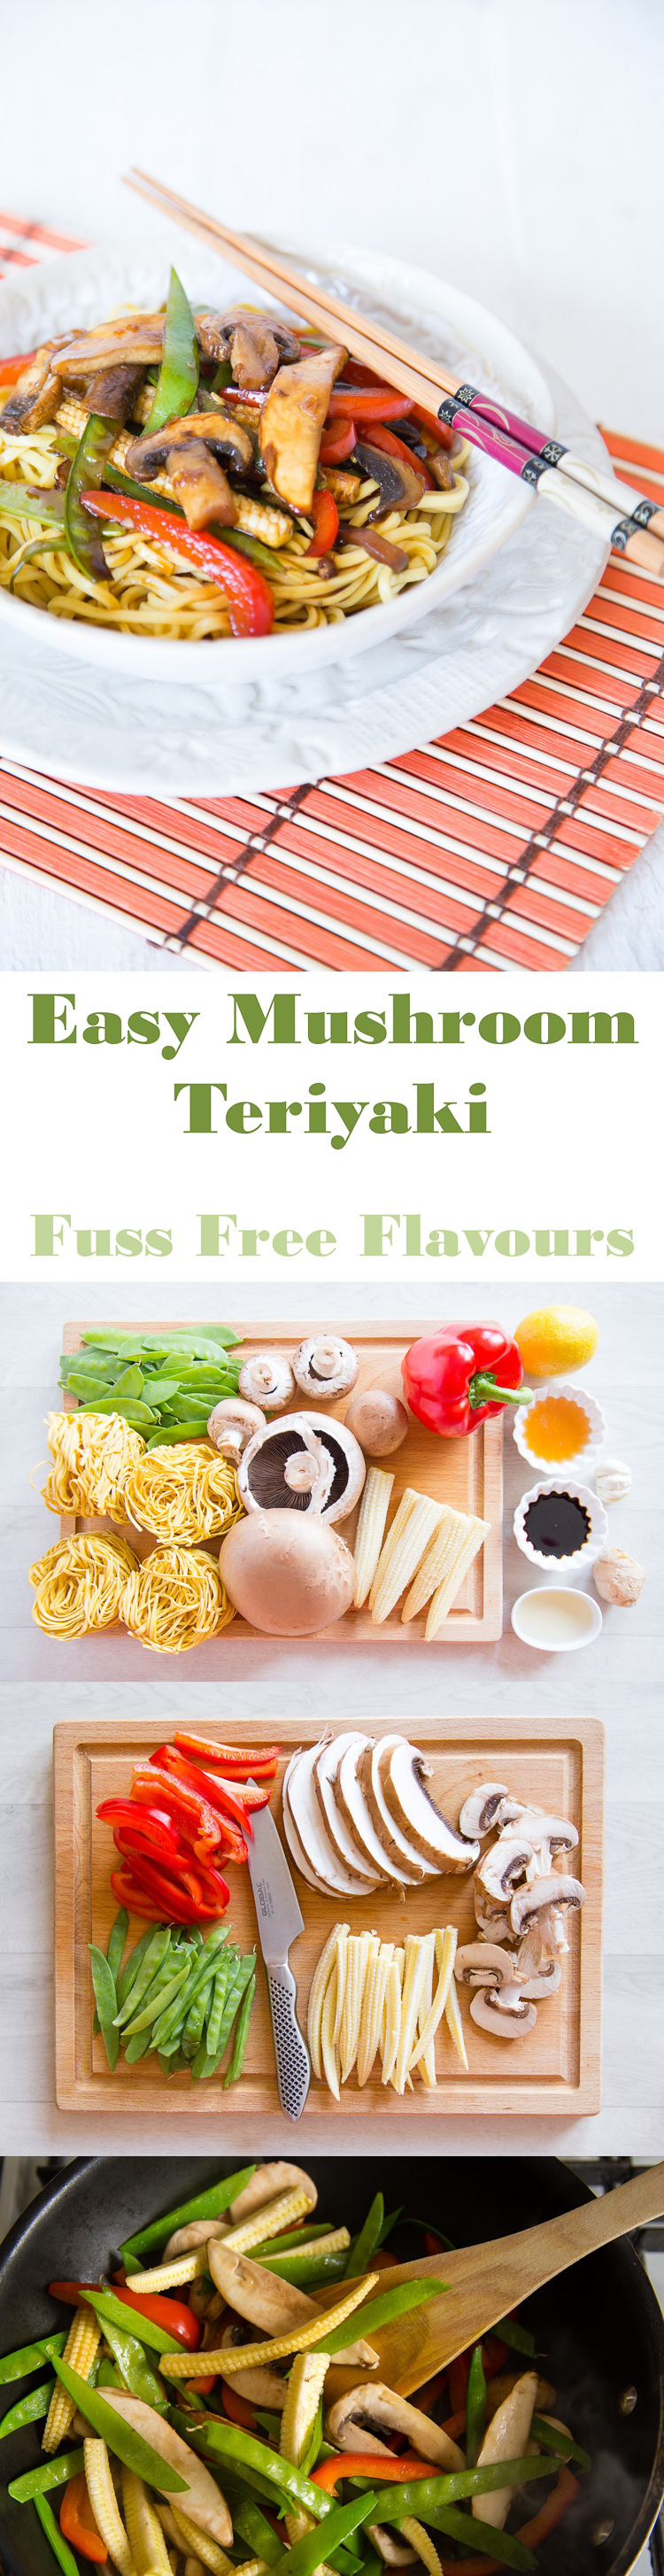 An easy vegetarian recipe for mushroom teriyaki that is bursting with colour, flavour and vegetables | Fuss Free Flavours